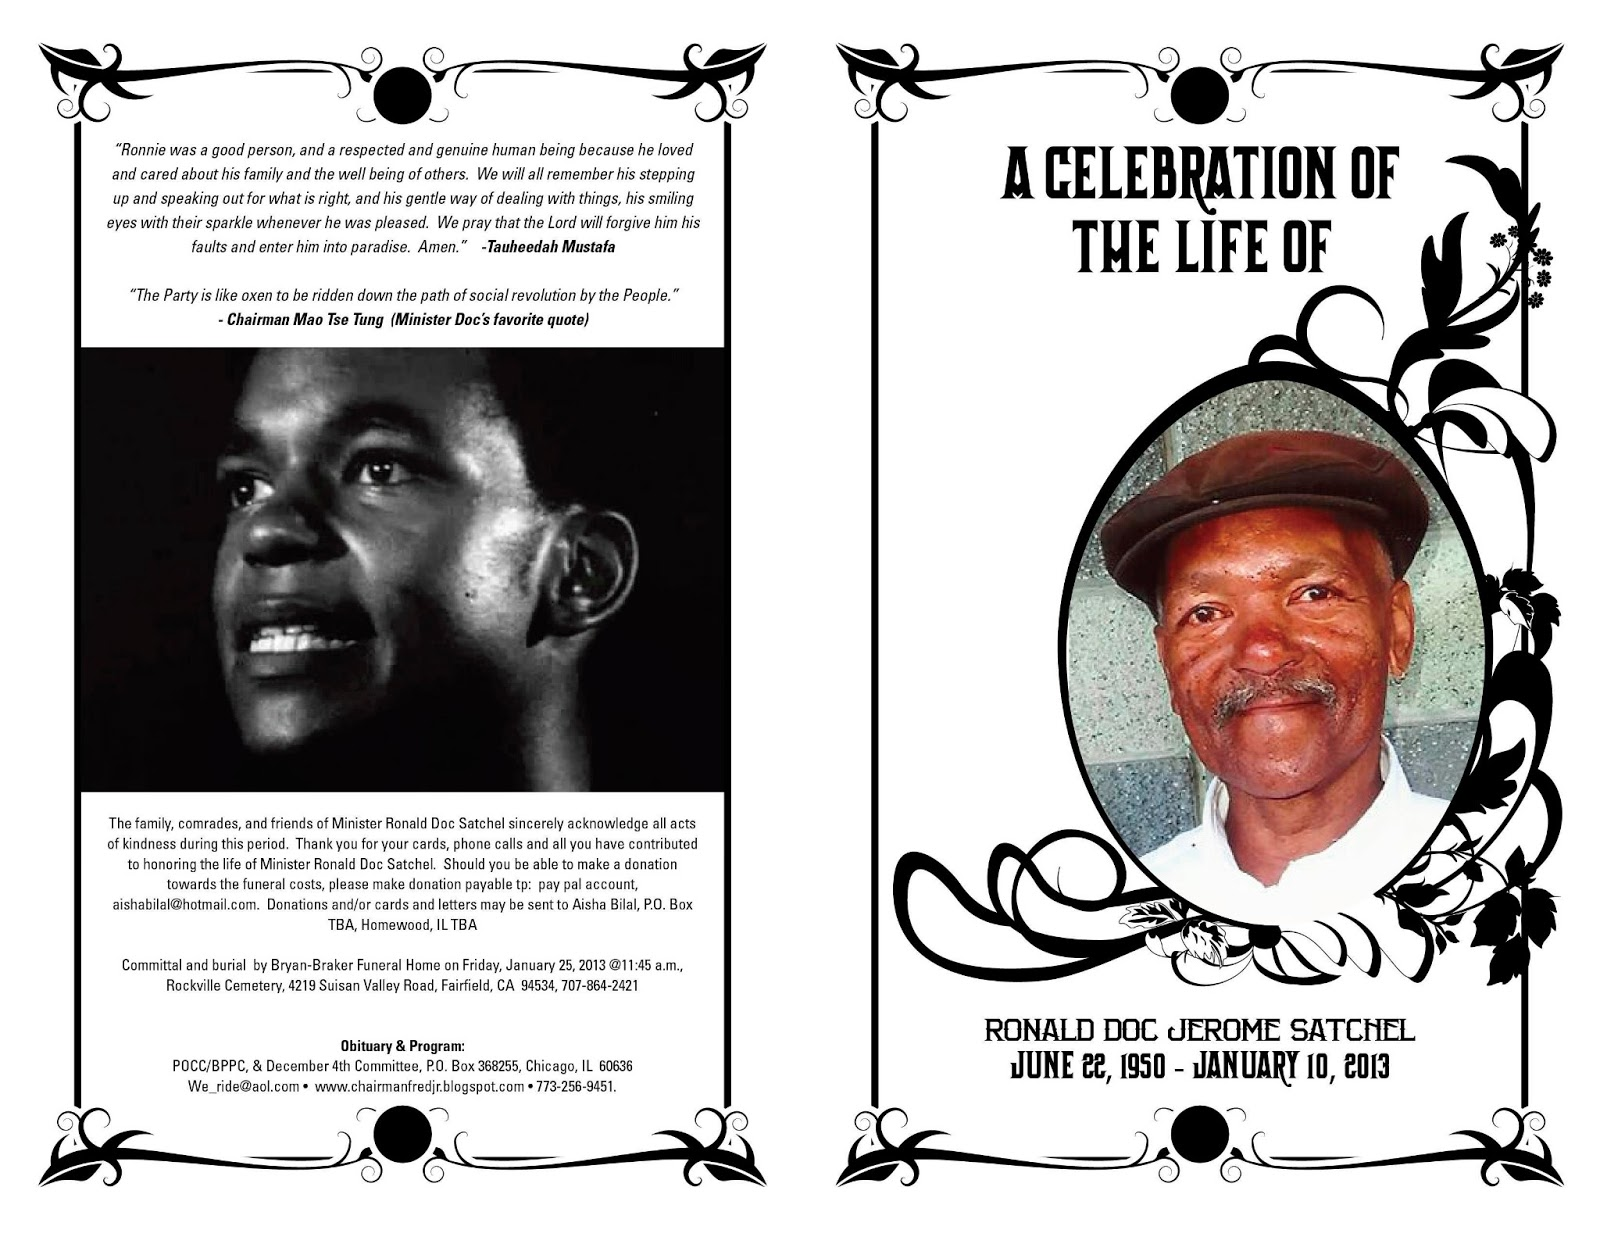 a celebration of the life of minister ronald doc jerome satchel illinois chapter black panther party - Free Celebration Of Life Program Template